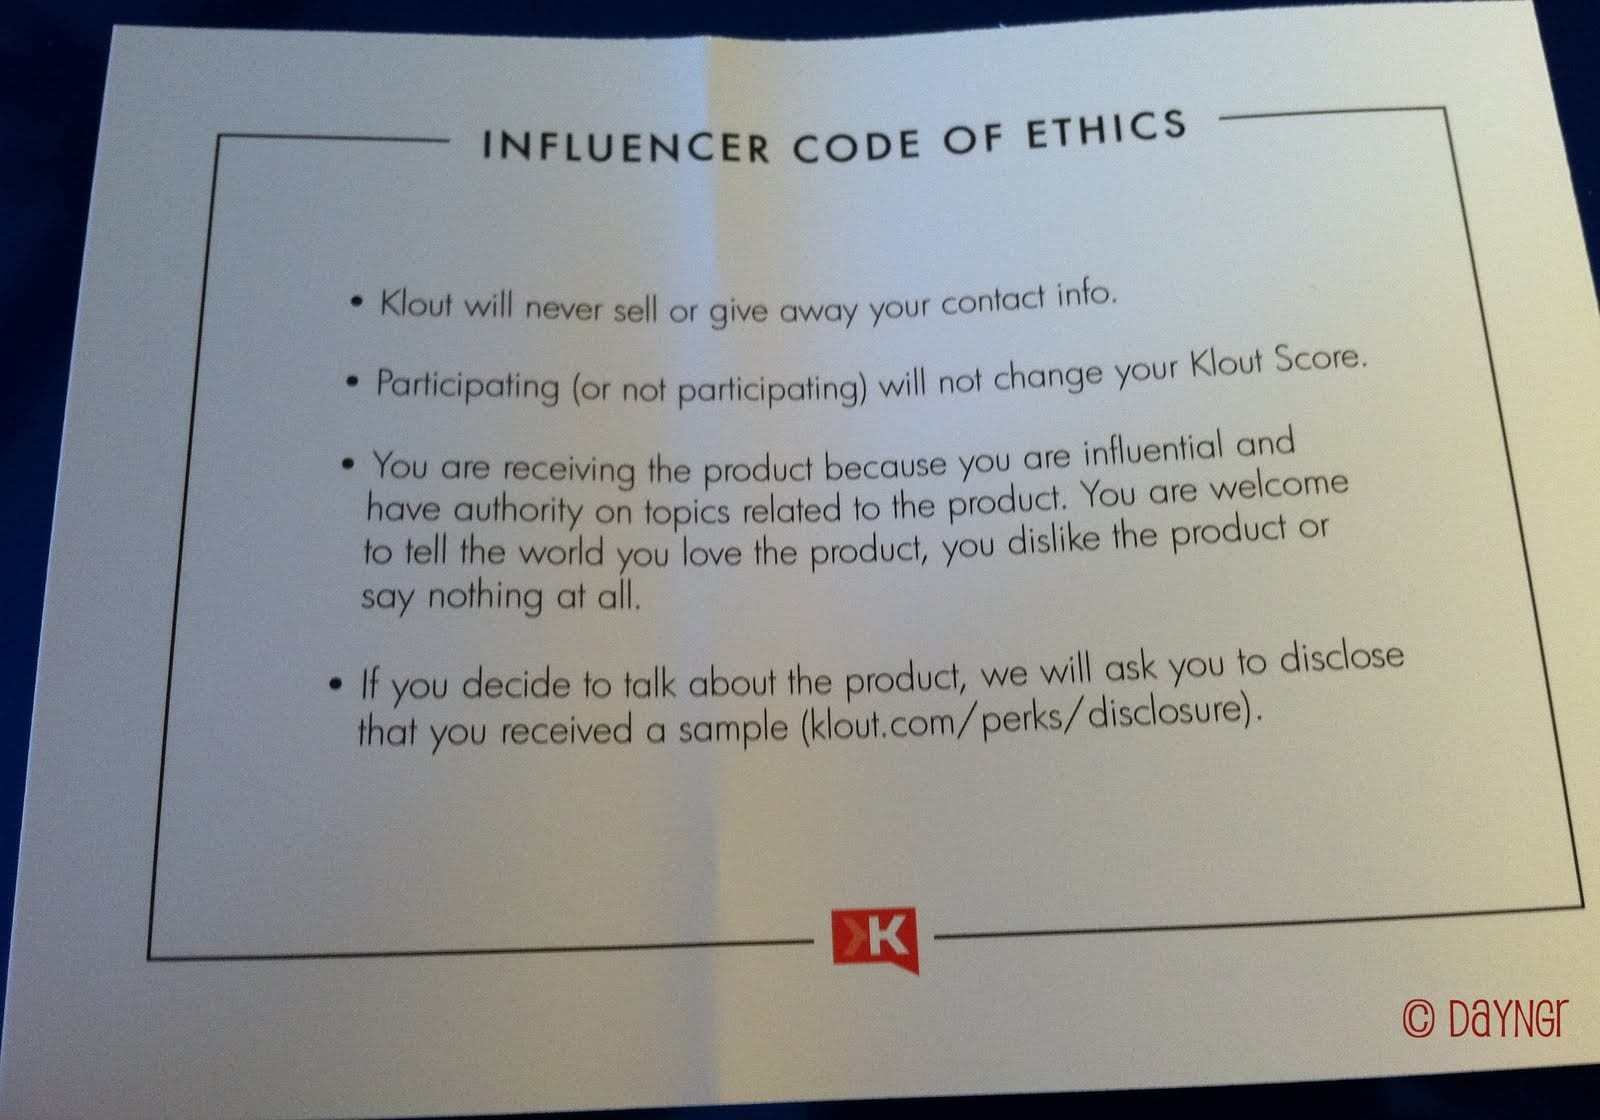 Kout Influencer Code of Ethics